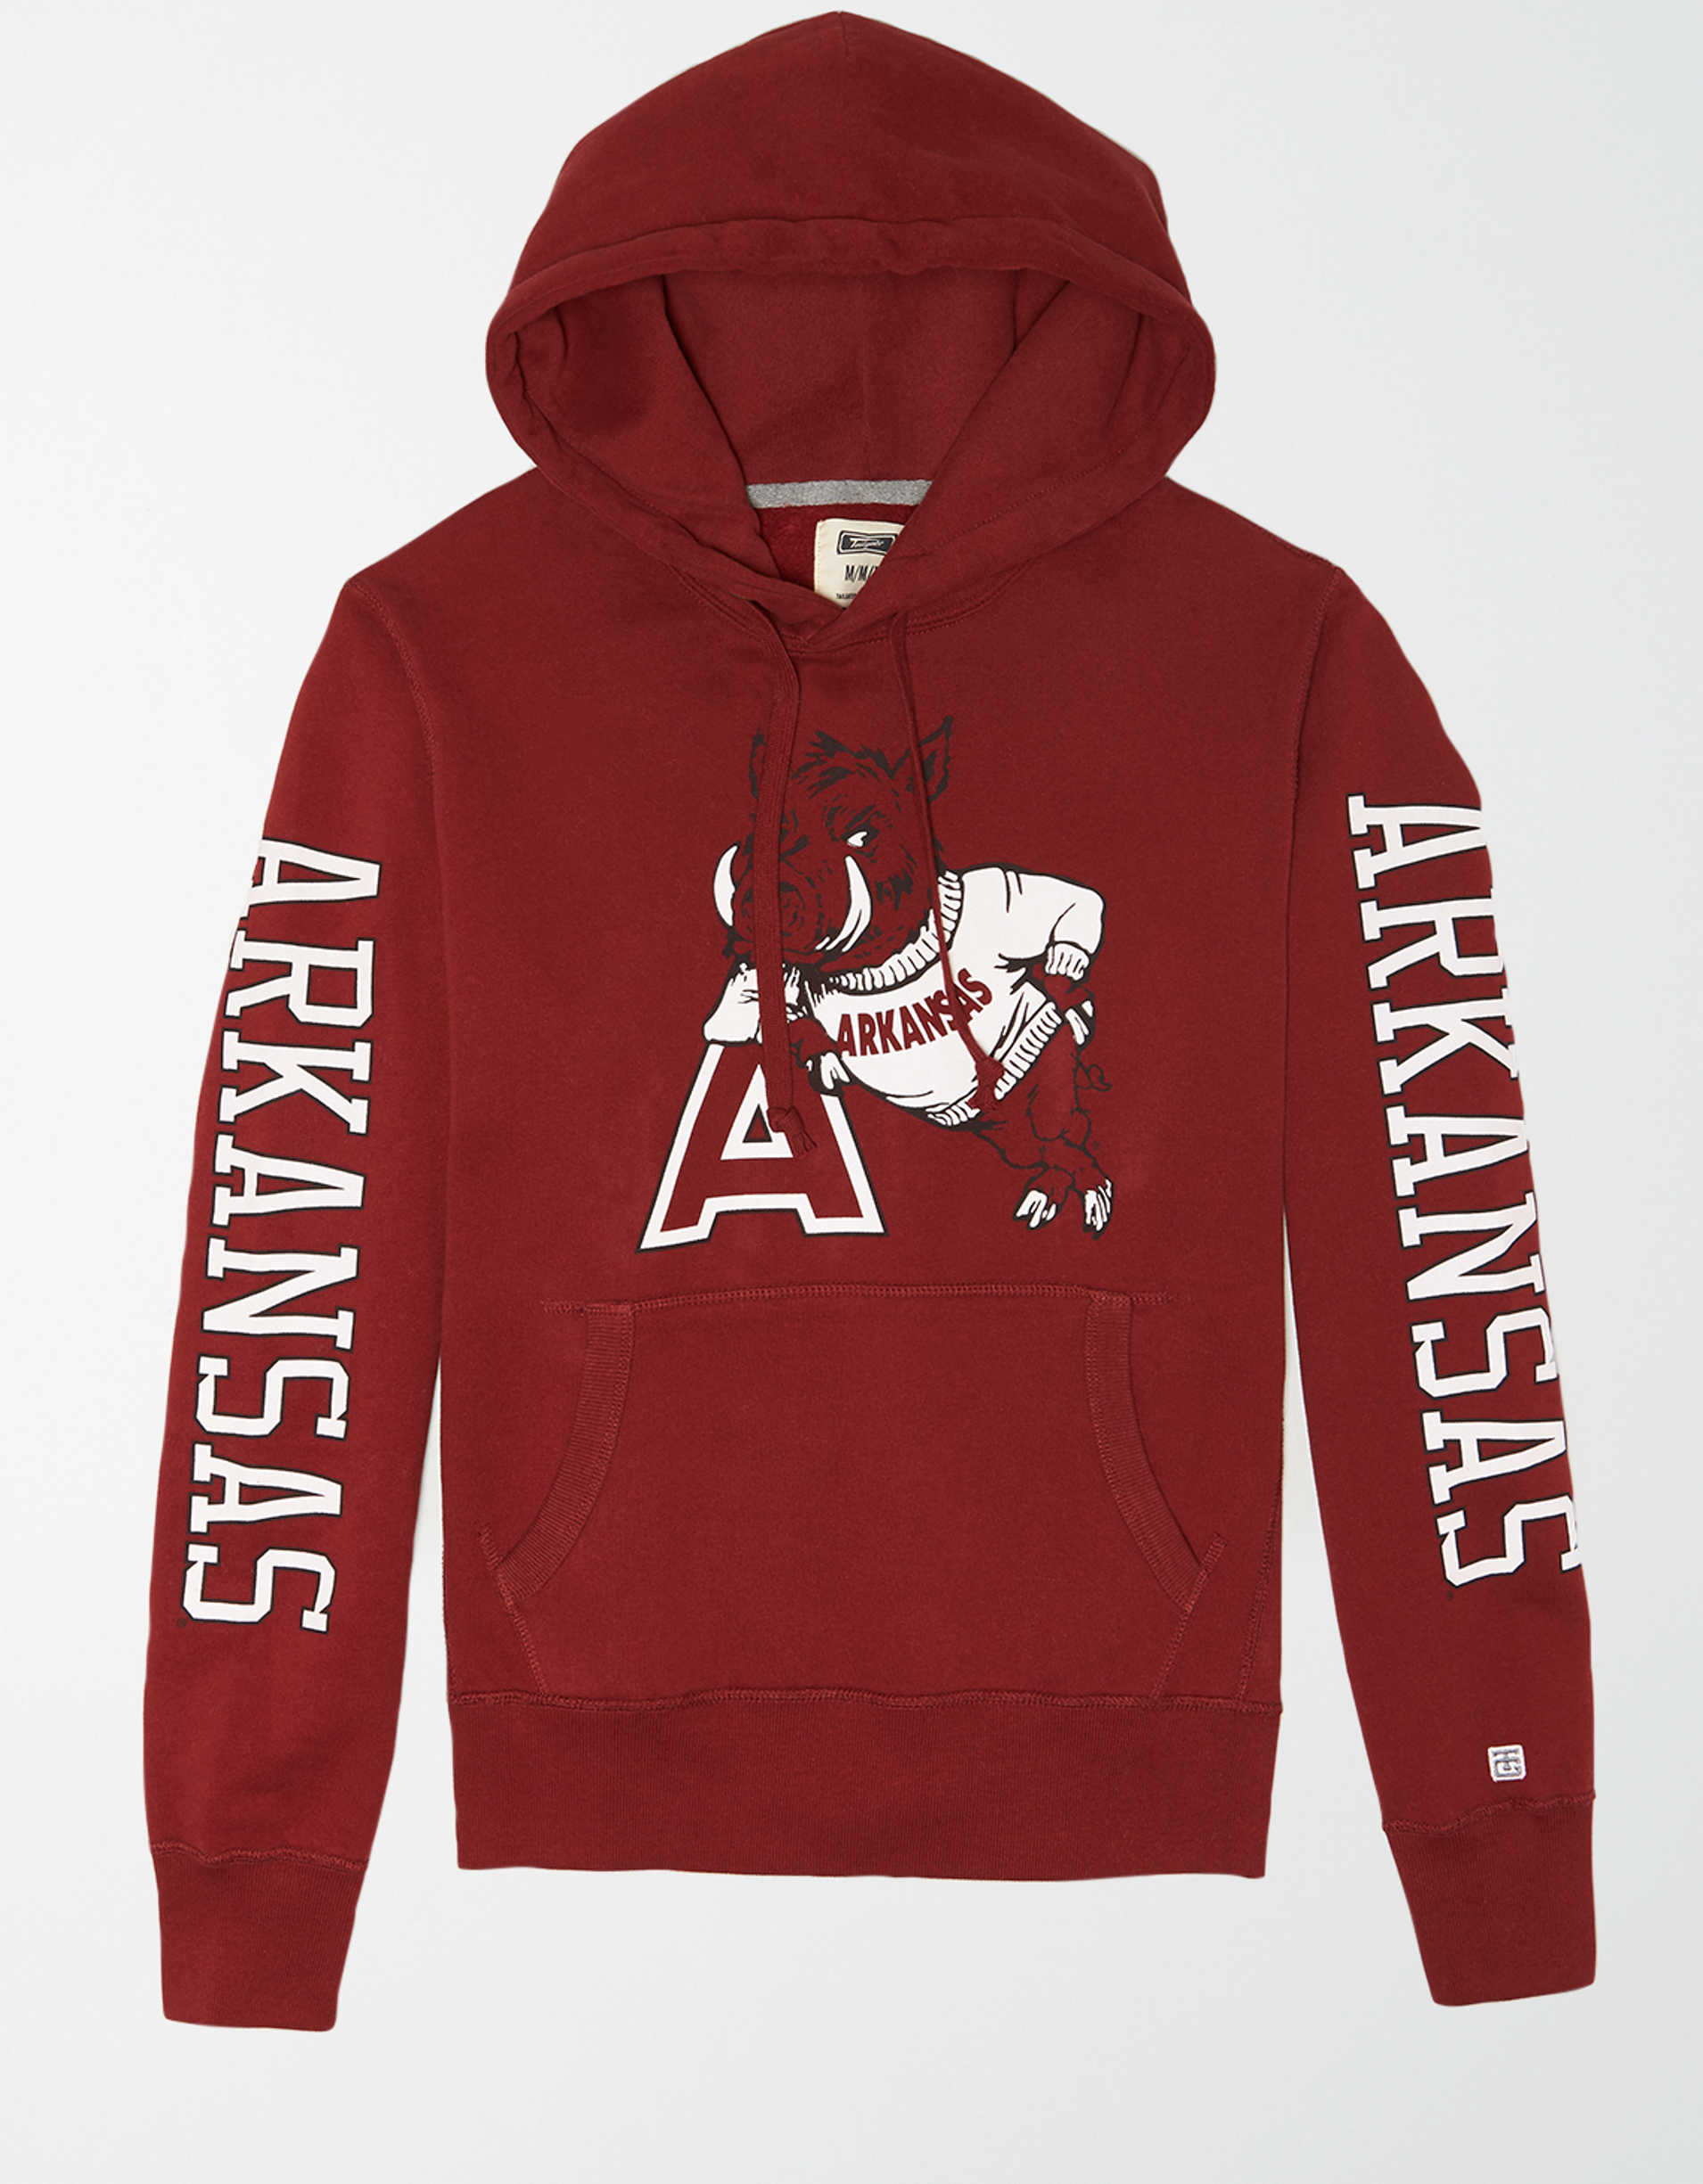 Tailgate Men's Arkansas Razorbacks Fleece Hoodie